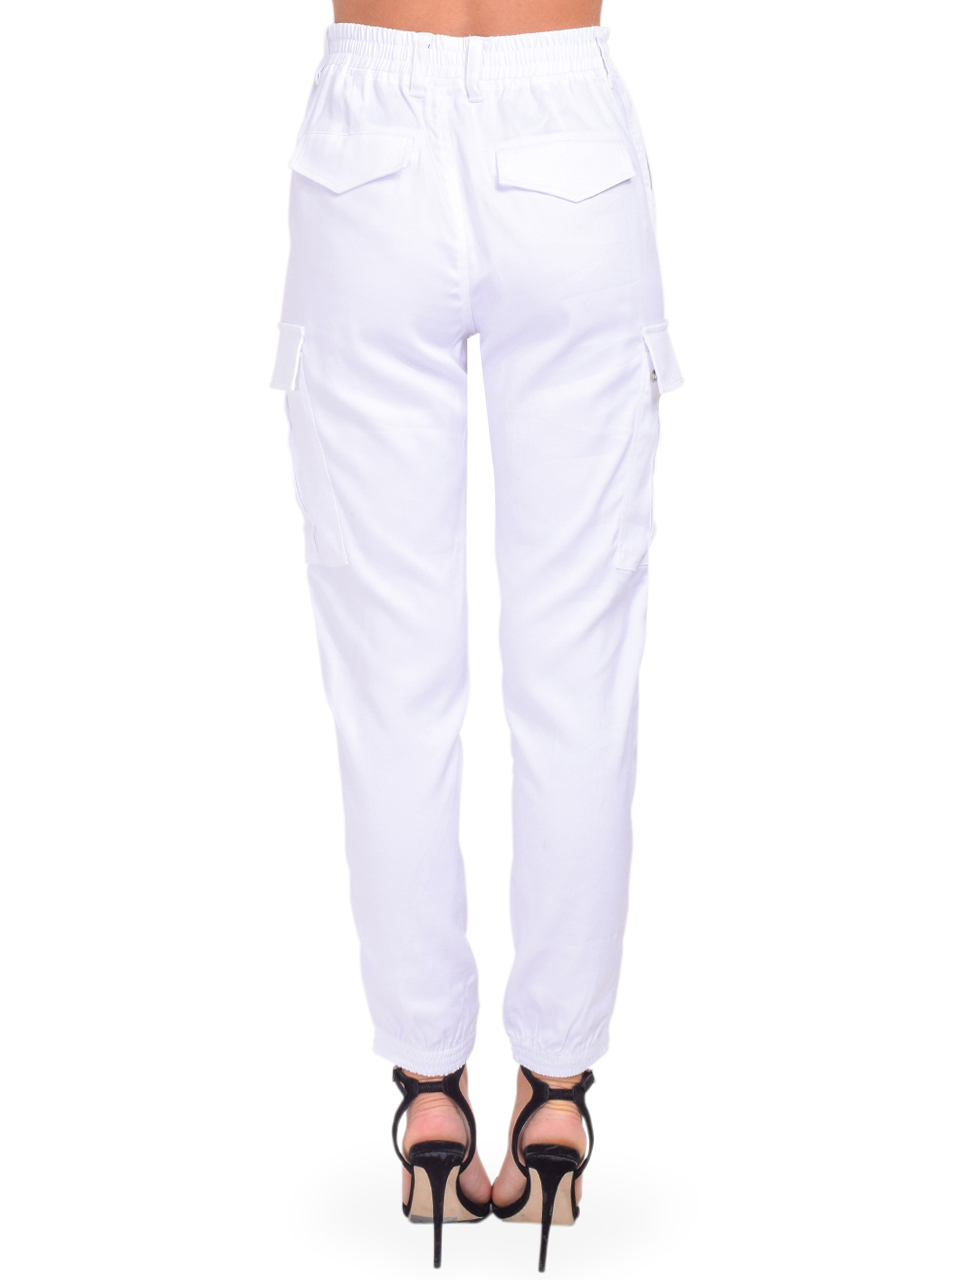 Jinni Cargo Pant in White Back VIew